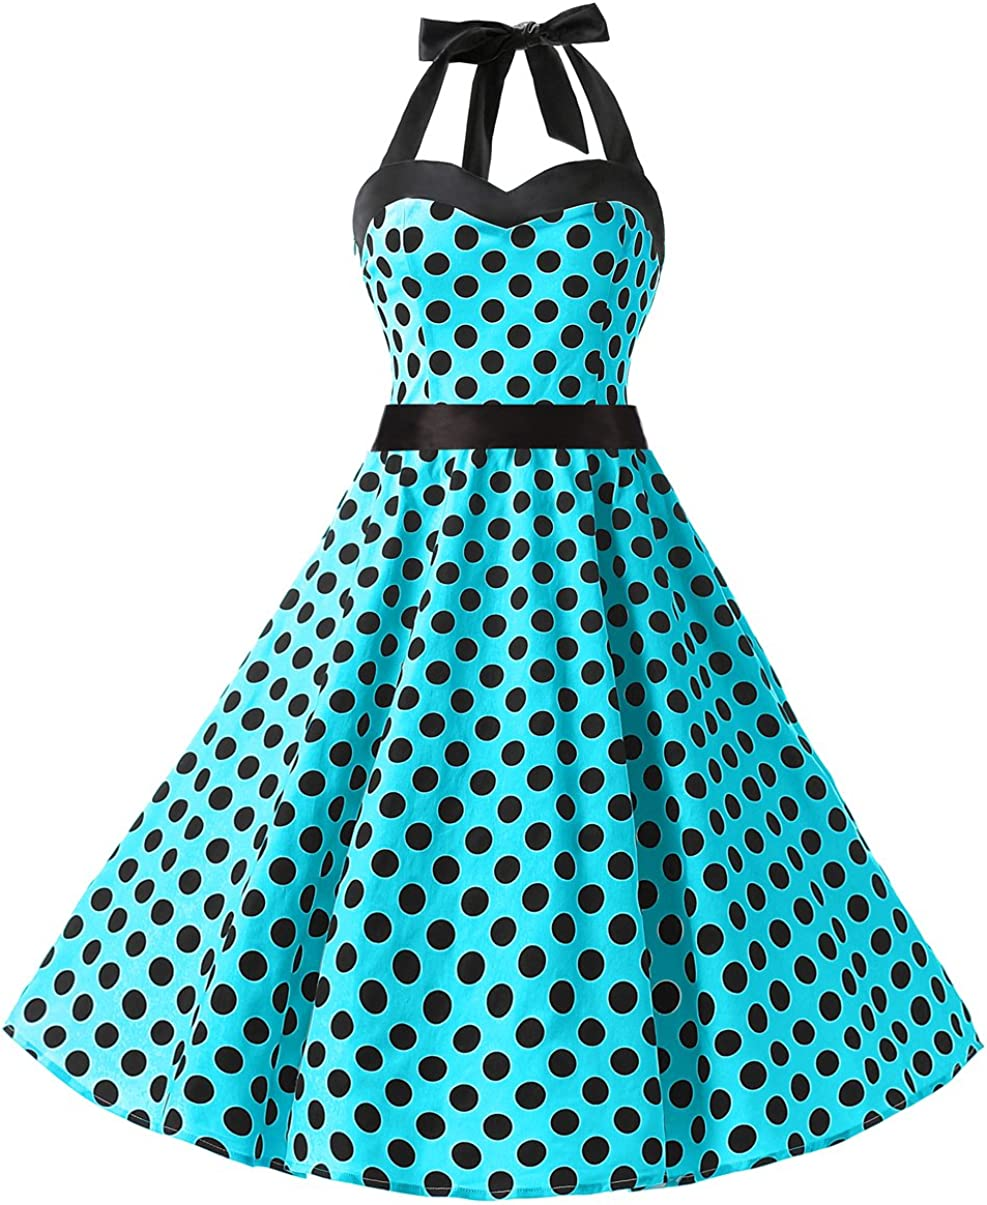 TALLA 3XL. Dresstells® Halter 50s Rockabilly Polka Dots Audrey Dress Retro Cocktail Dress Blue Black Dot 3XL